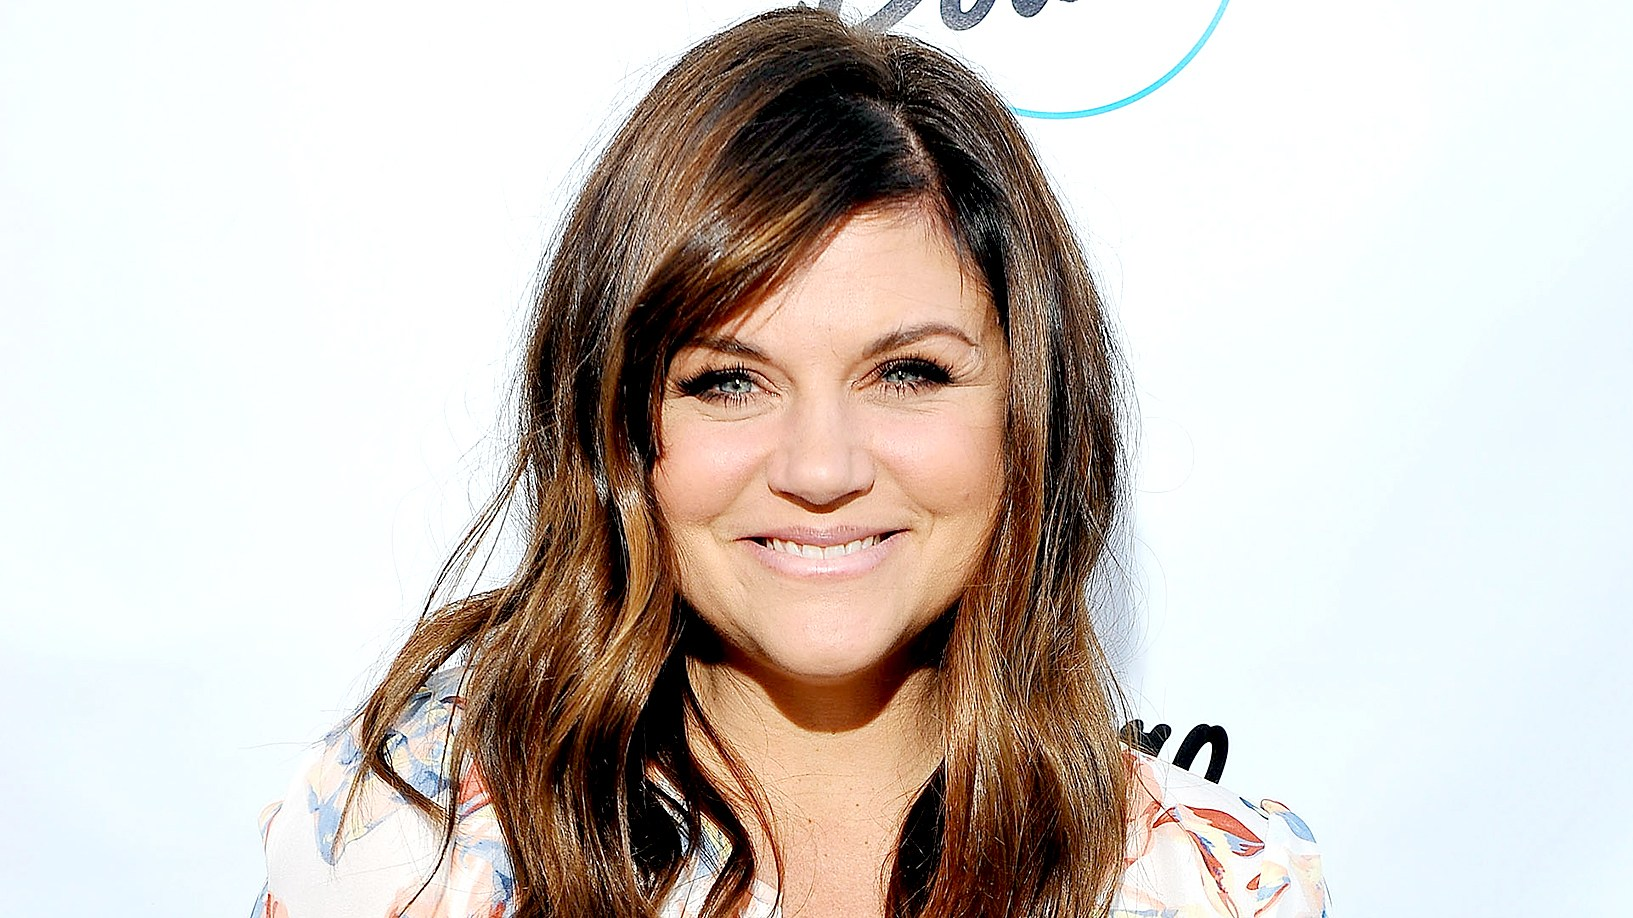 Tiffani Thiessen hosts the Grand Opening of Bowlero on March 12, 2016 in Woodland Hills, California.